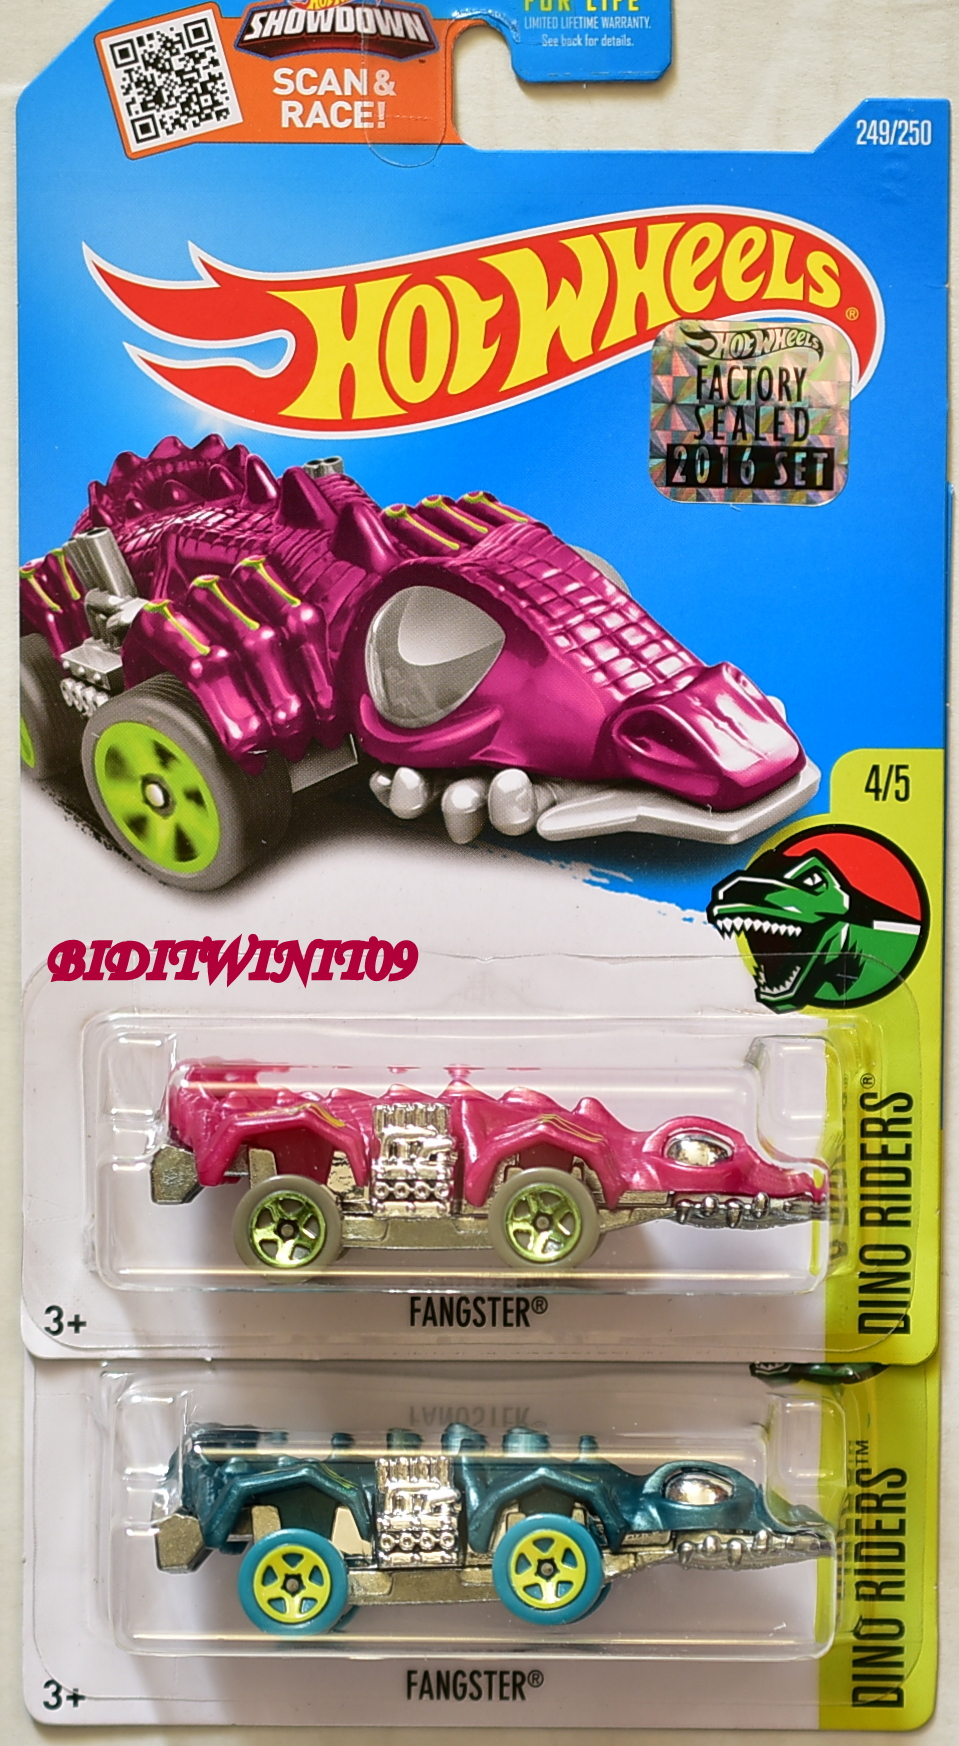 HOT WHEELS 2016 DINO RIDERS FANGSTER VARIATION FACTORY SEALED